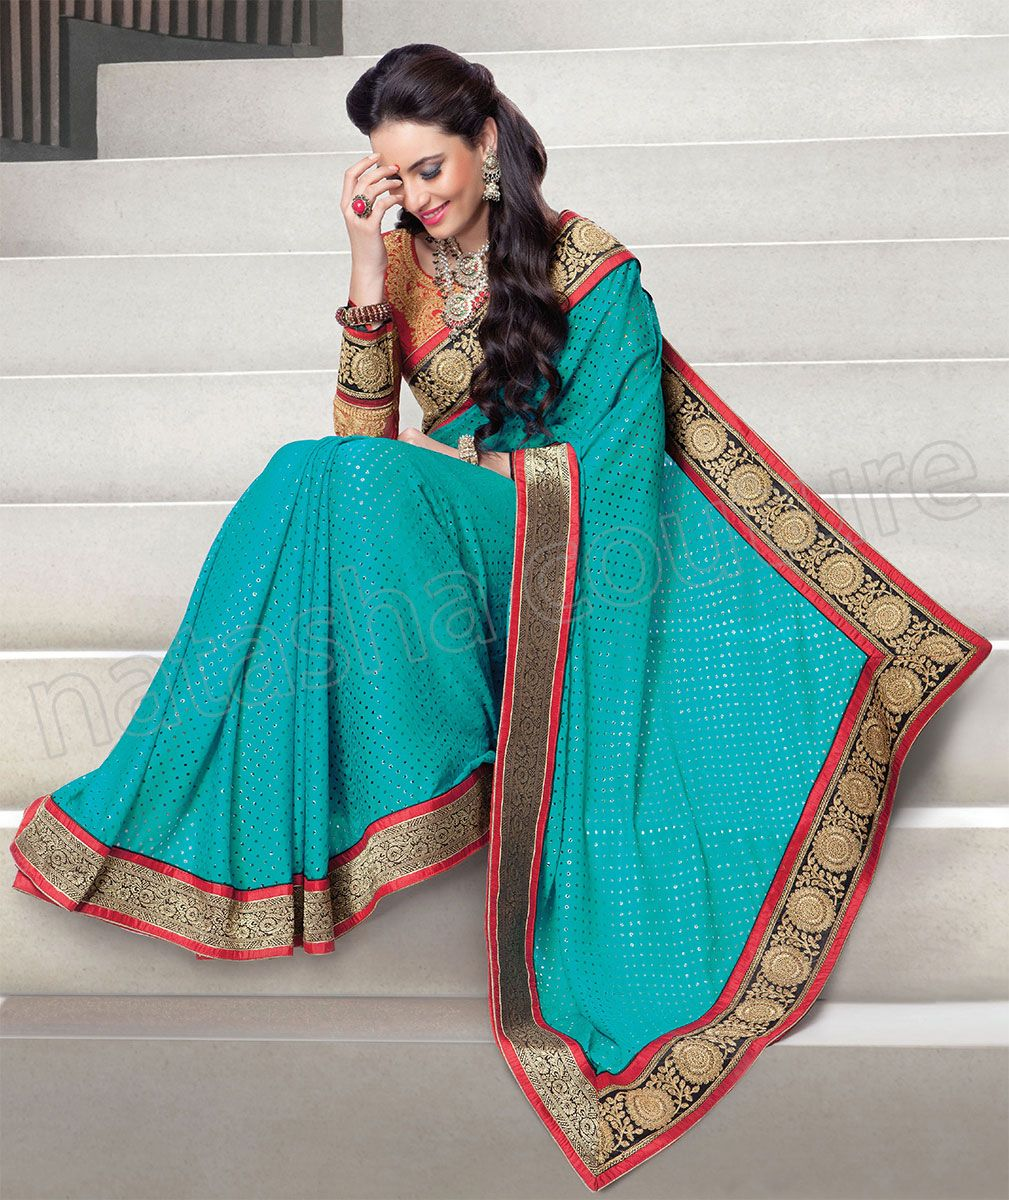 Designer Saree #Blue #Indian Wear #Desi Fashion #Natasha Couture ...